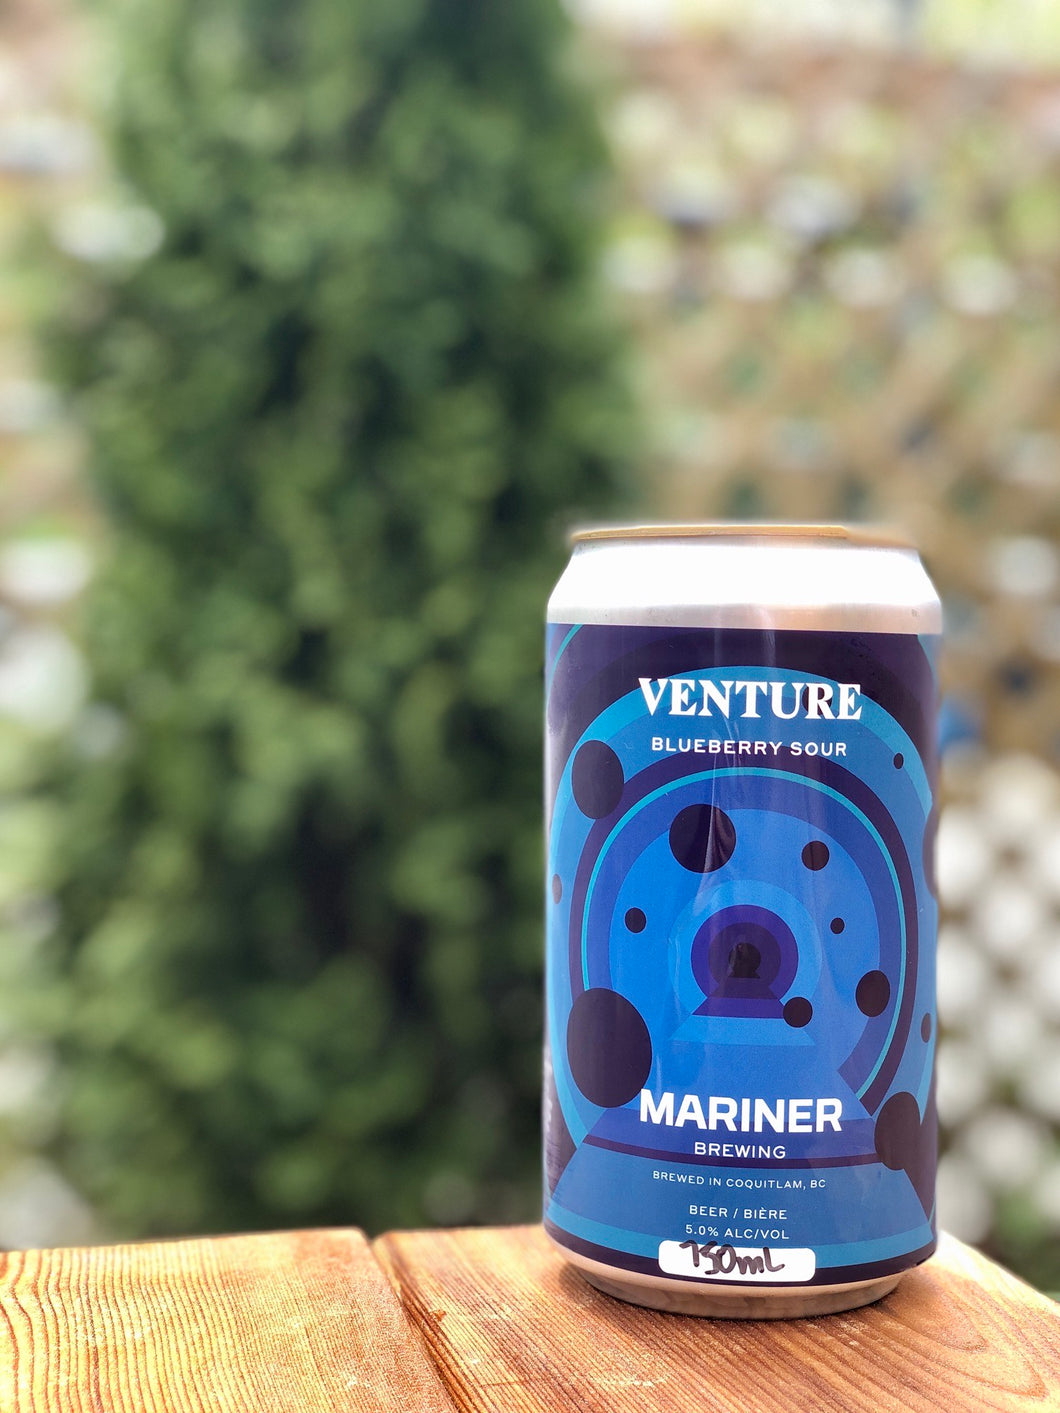 750ml Venture Blueberry Sour Crowler